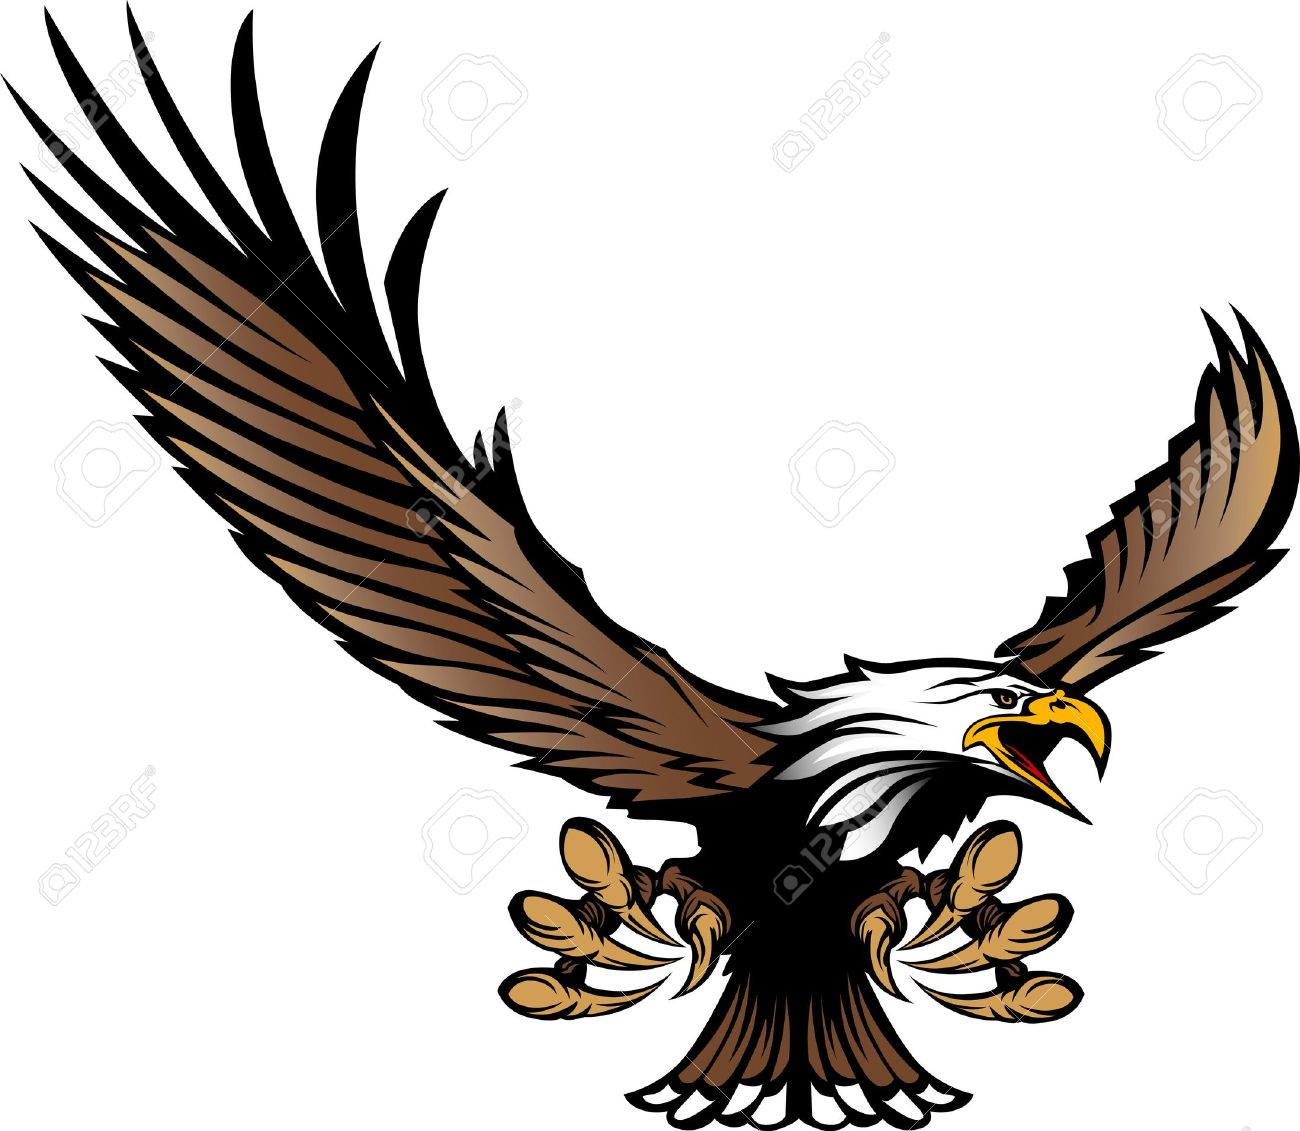 Image result for hawk clipart